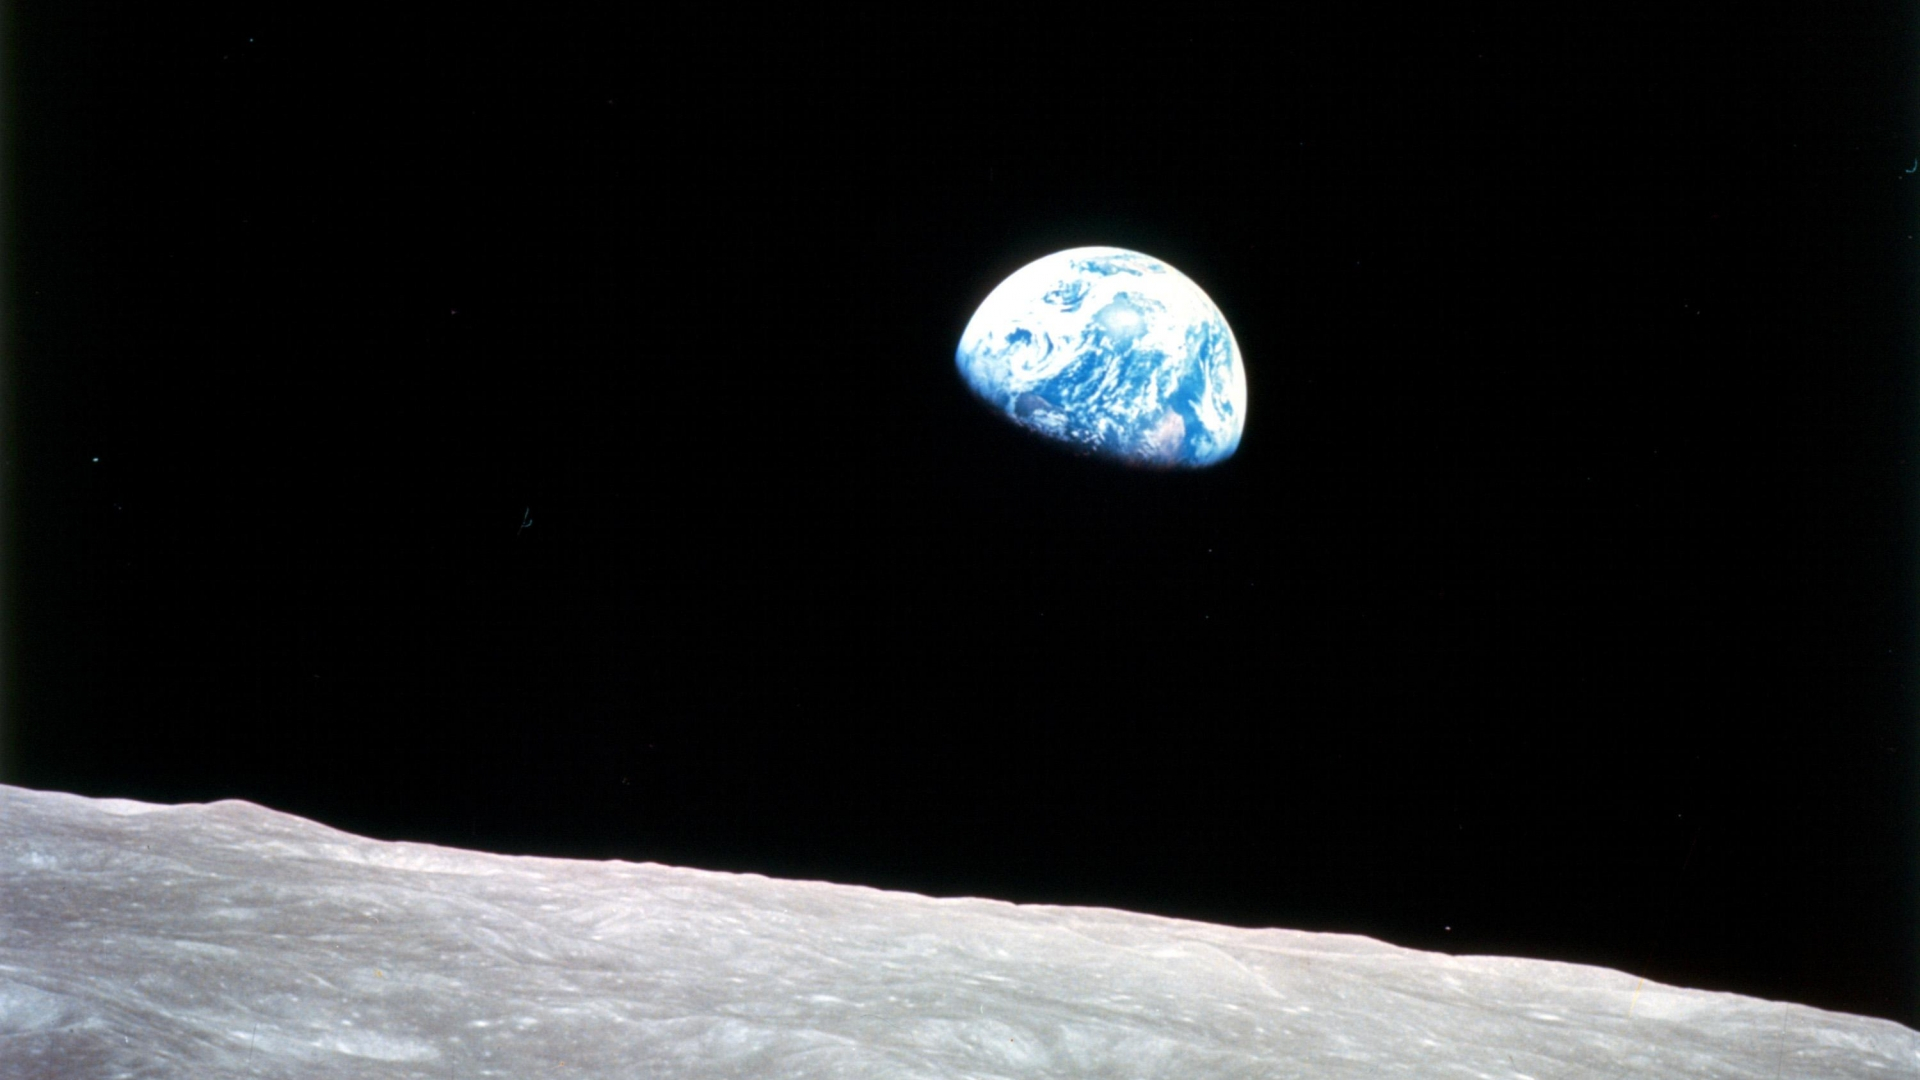 A shot of Earthrise from the Apollo 8 mission. (Credit: NASA)